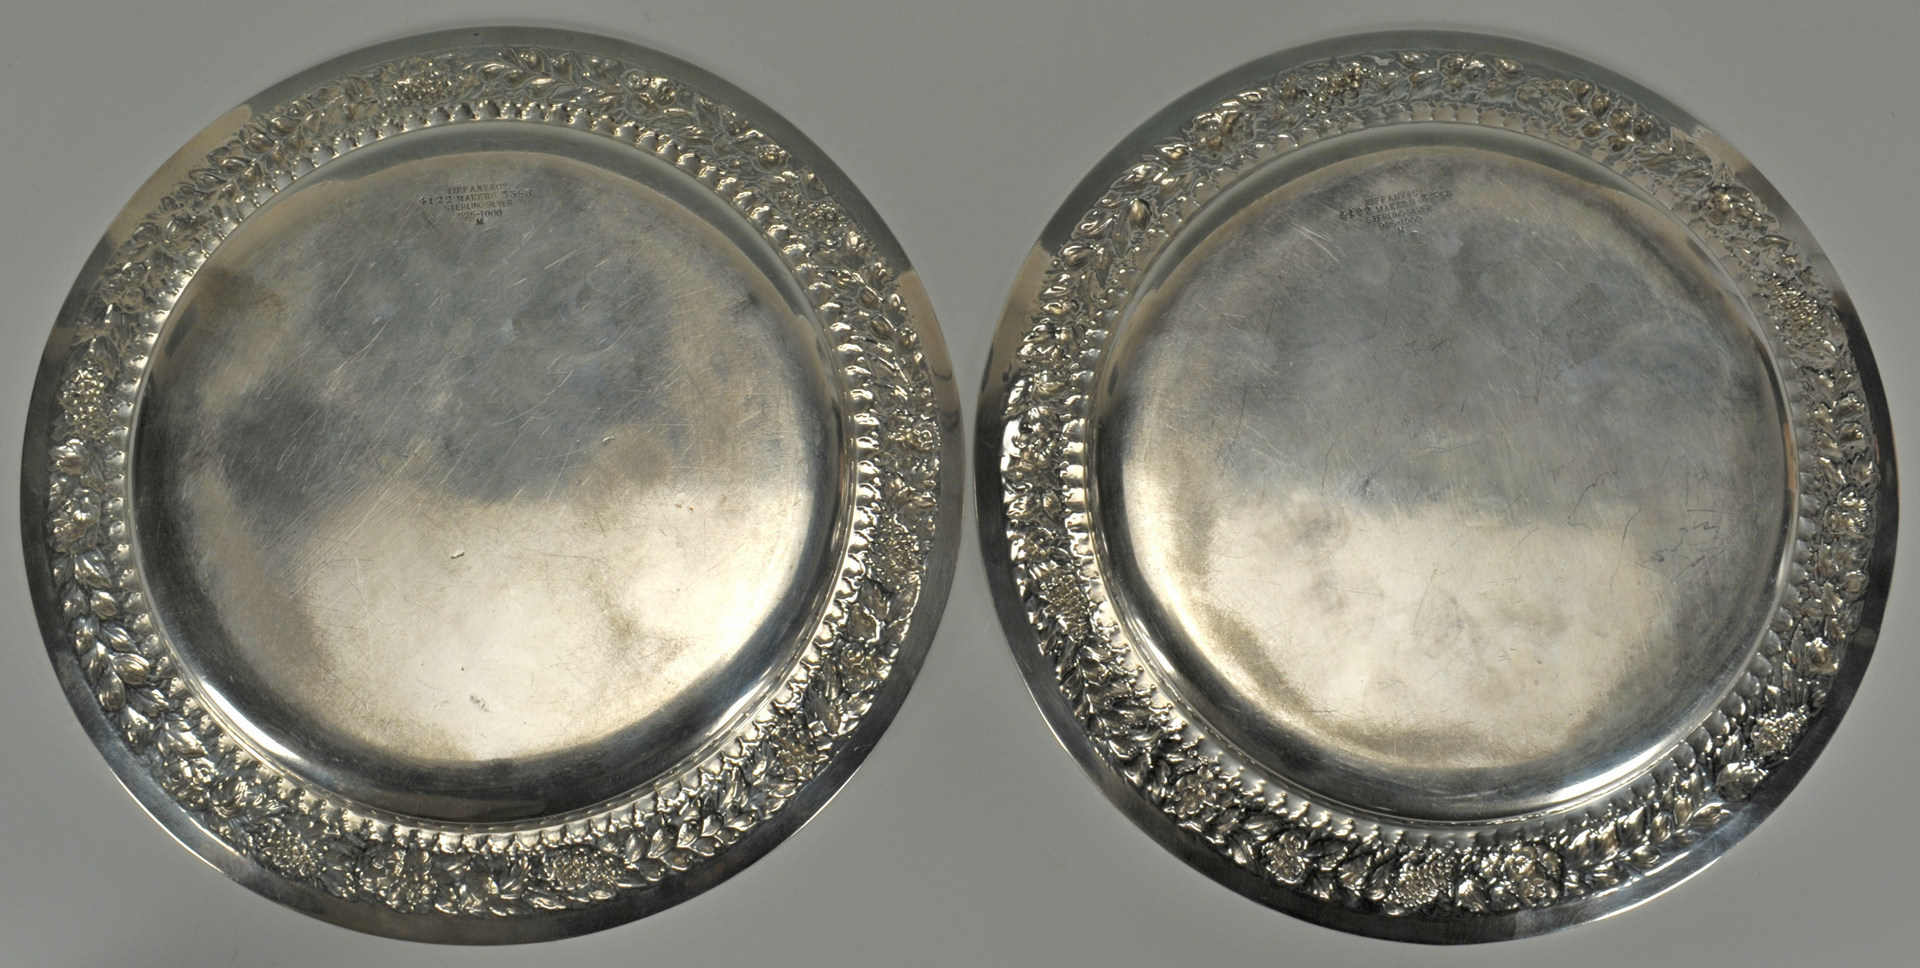 Lot 57: Pair of Tiffany Sterling Plates or Chargers